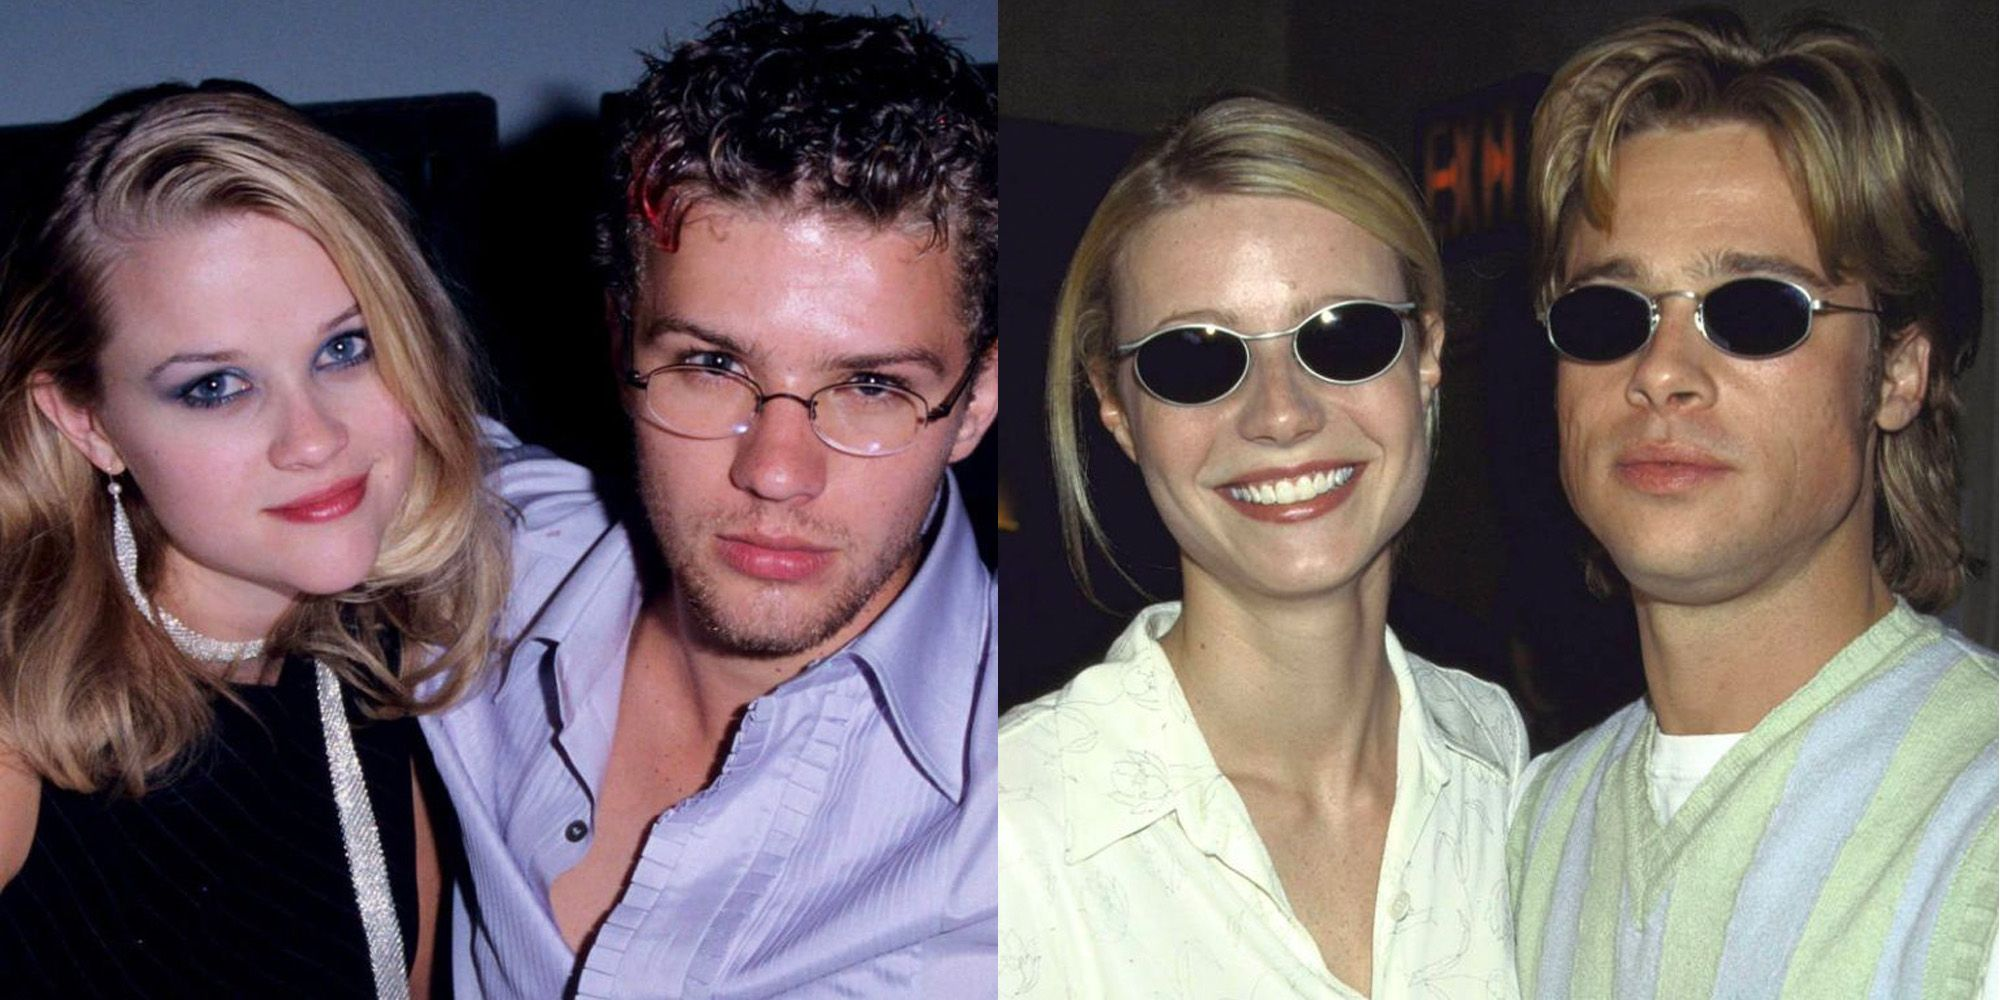 The Best Couples from the '90s You May Have Forgotten About